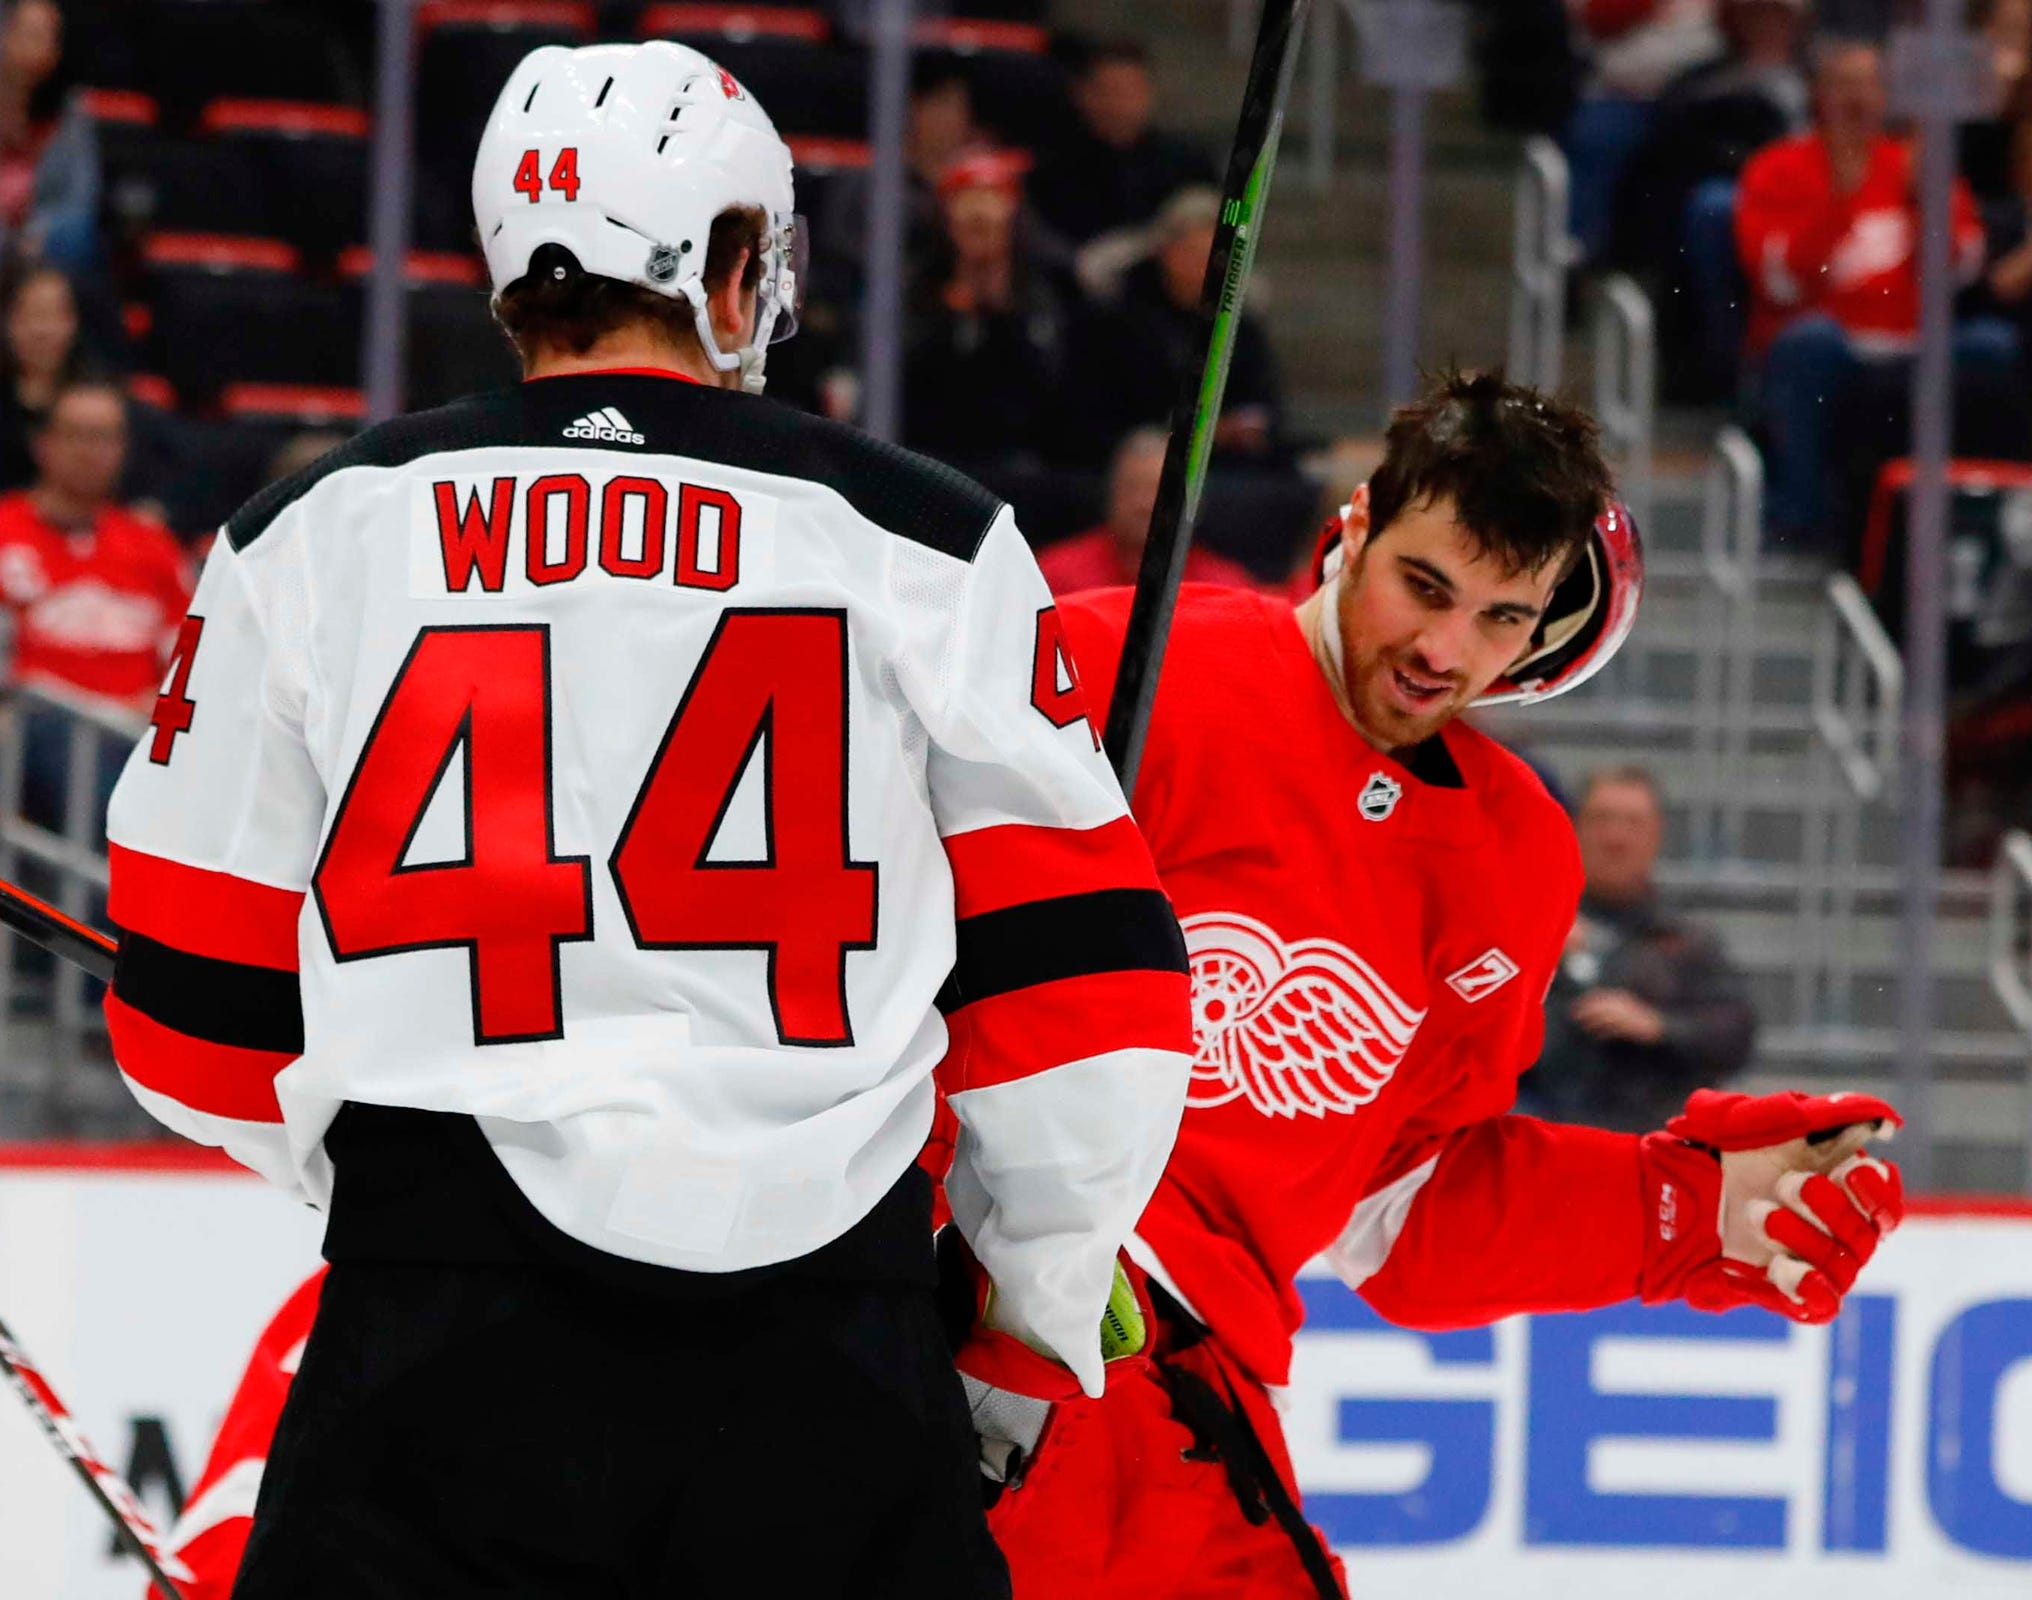 Devils left wing Miles Wood shoves Red wings defenseman Jake Chelios in the first period on Friday, March 29, 2019, at Little Caesar's Arena.